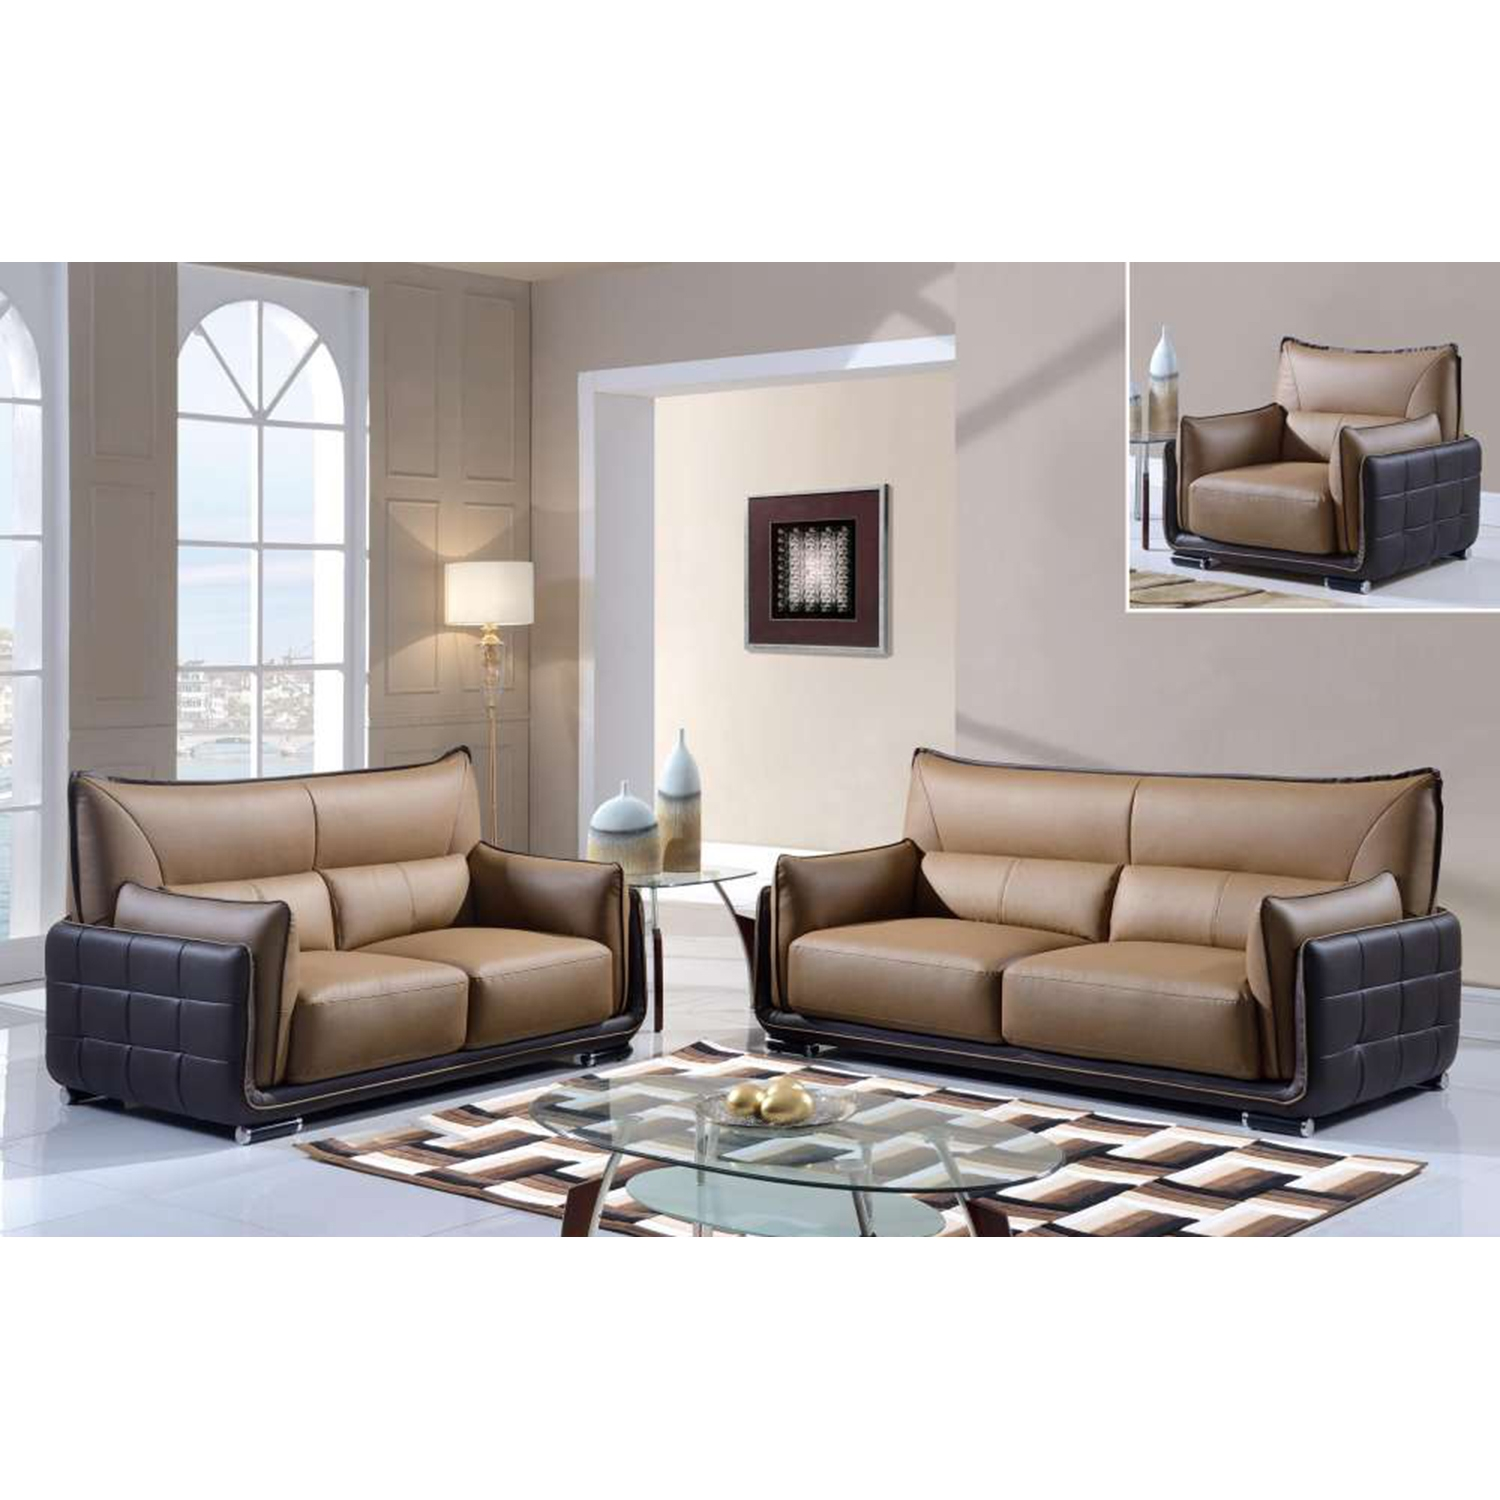 Kaden Sofa Set - Brown Leather